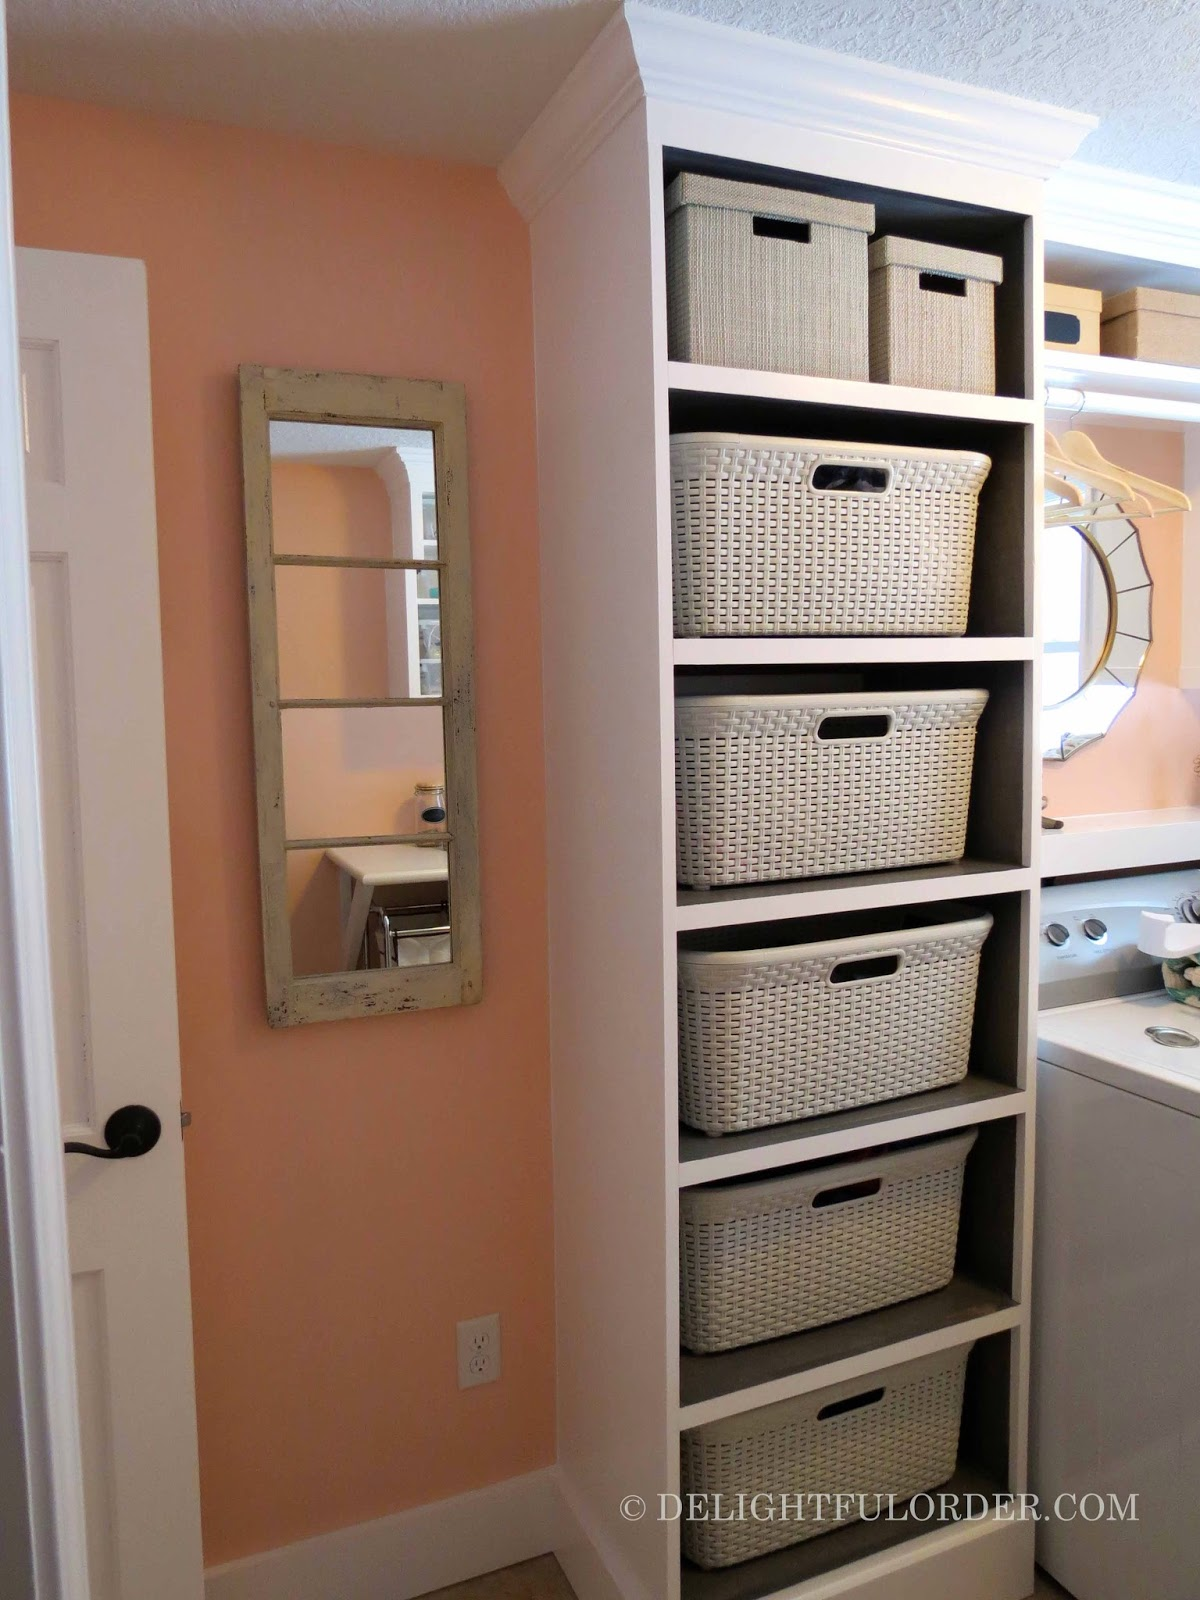 And Here Are The Before After Side By Photou002639s Of This Laundry Room